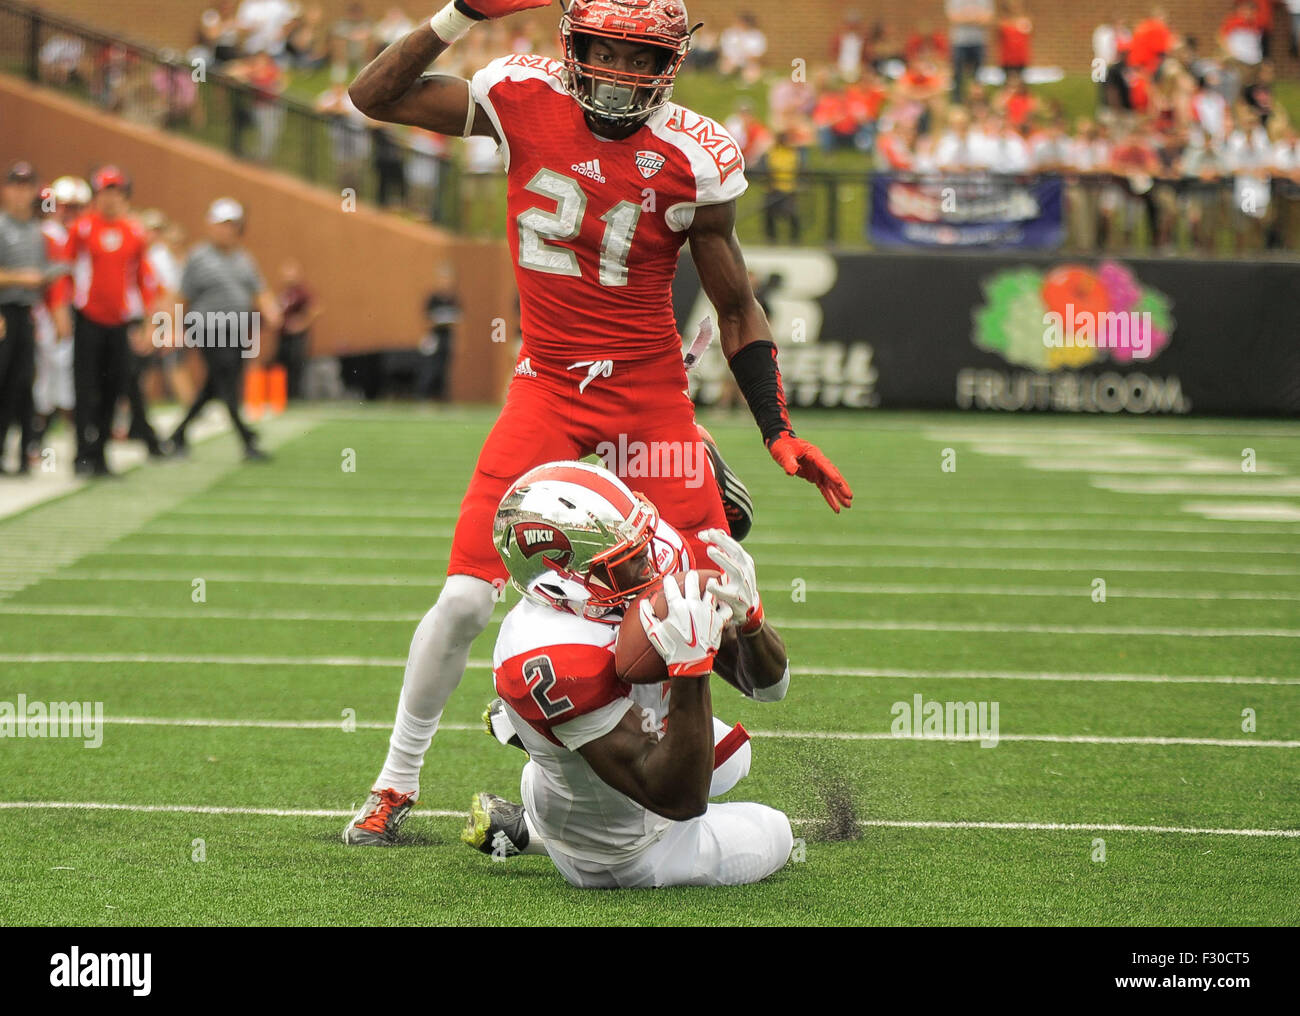 September 26, 2015 Western Kentucky Hilltoppers wide receiver Taywan Taylor (2) makes a great falling down diving - Stock Image